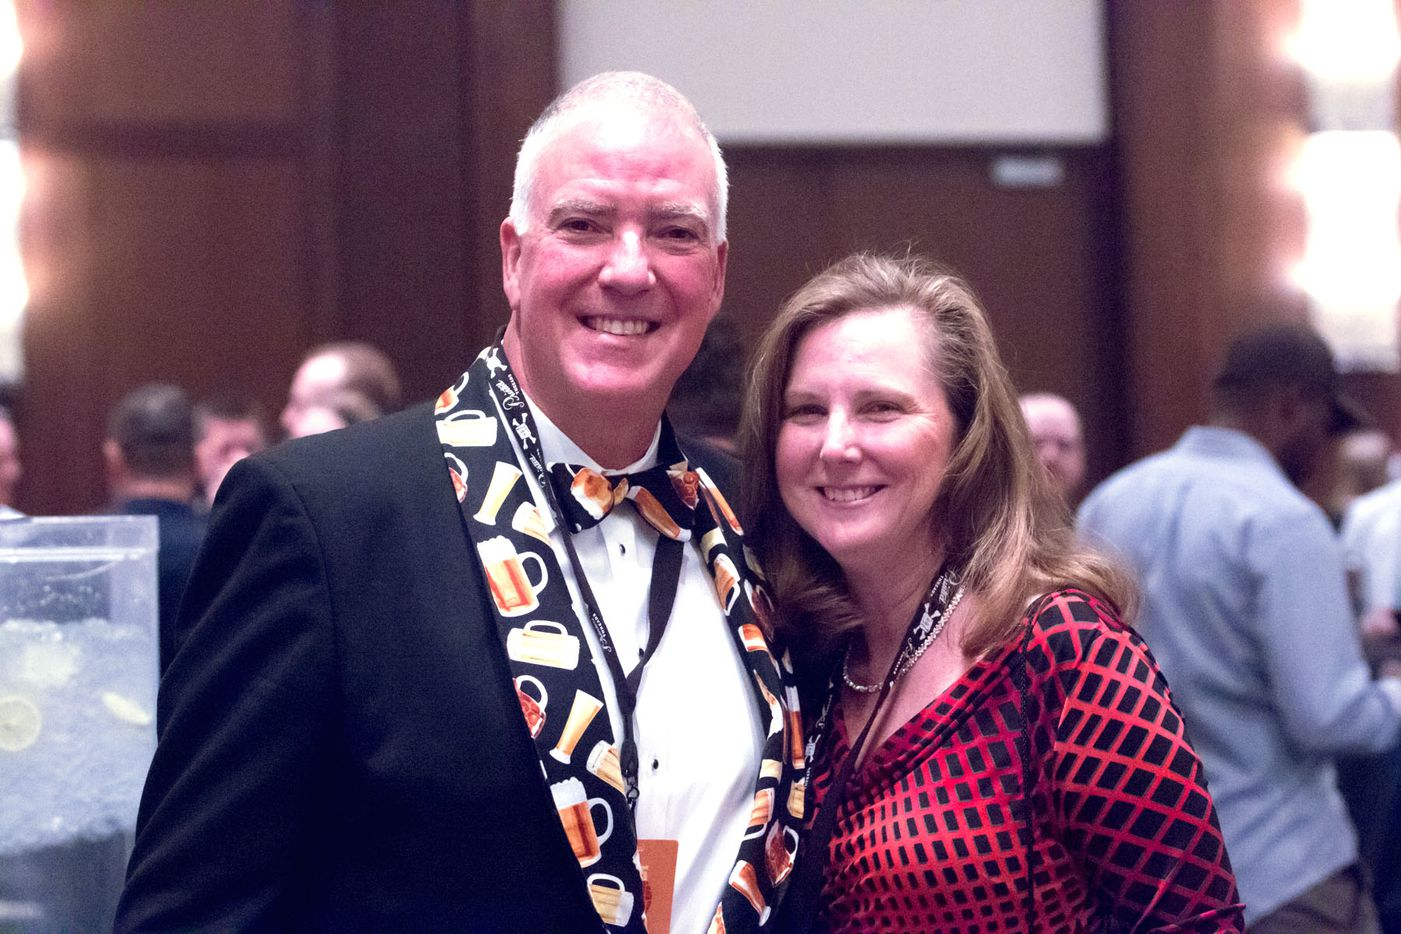 NTX Beer Week held its Second Annual Brewers Ball at the Renaissance Dallas Hotel on November 13, 2015. Walter and Pam Hodges